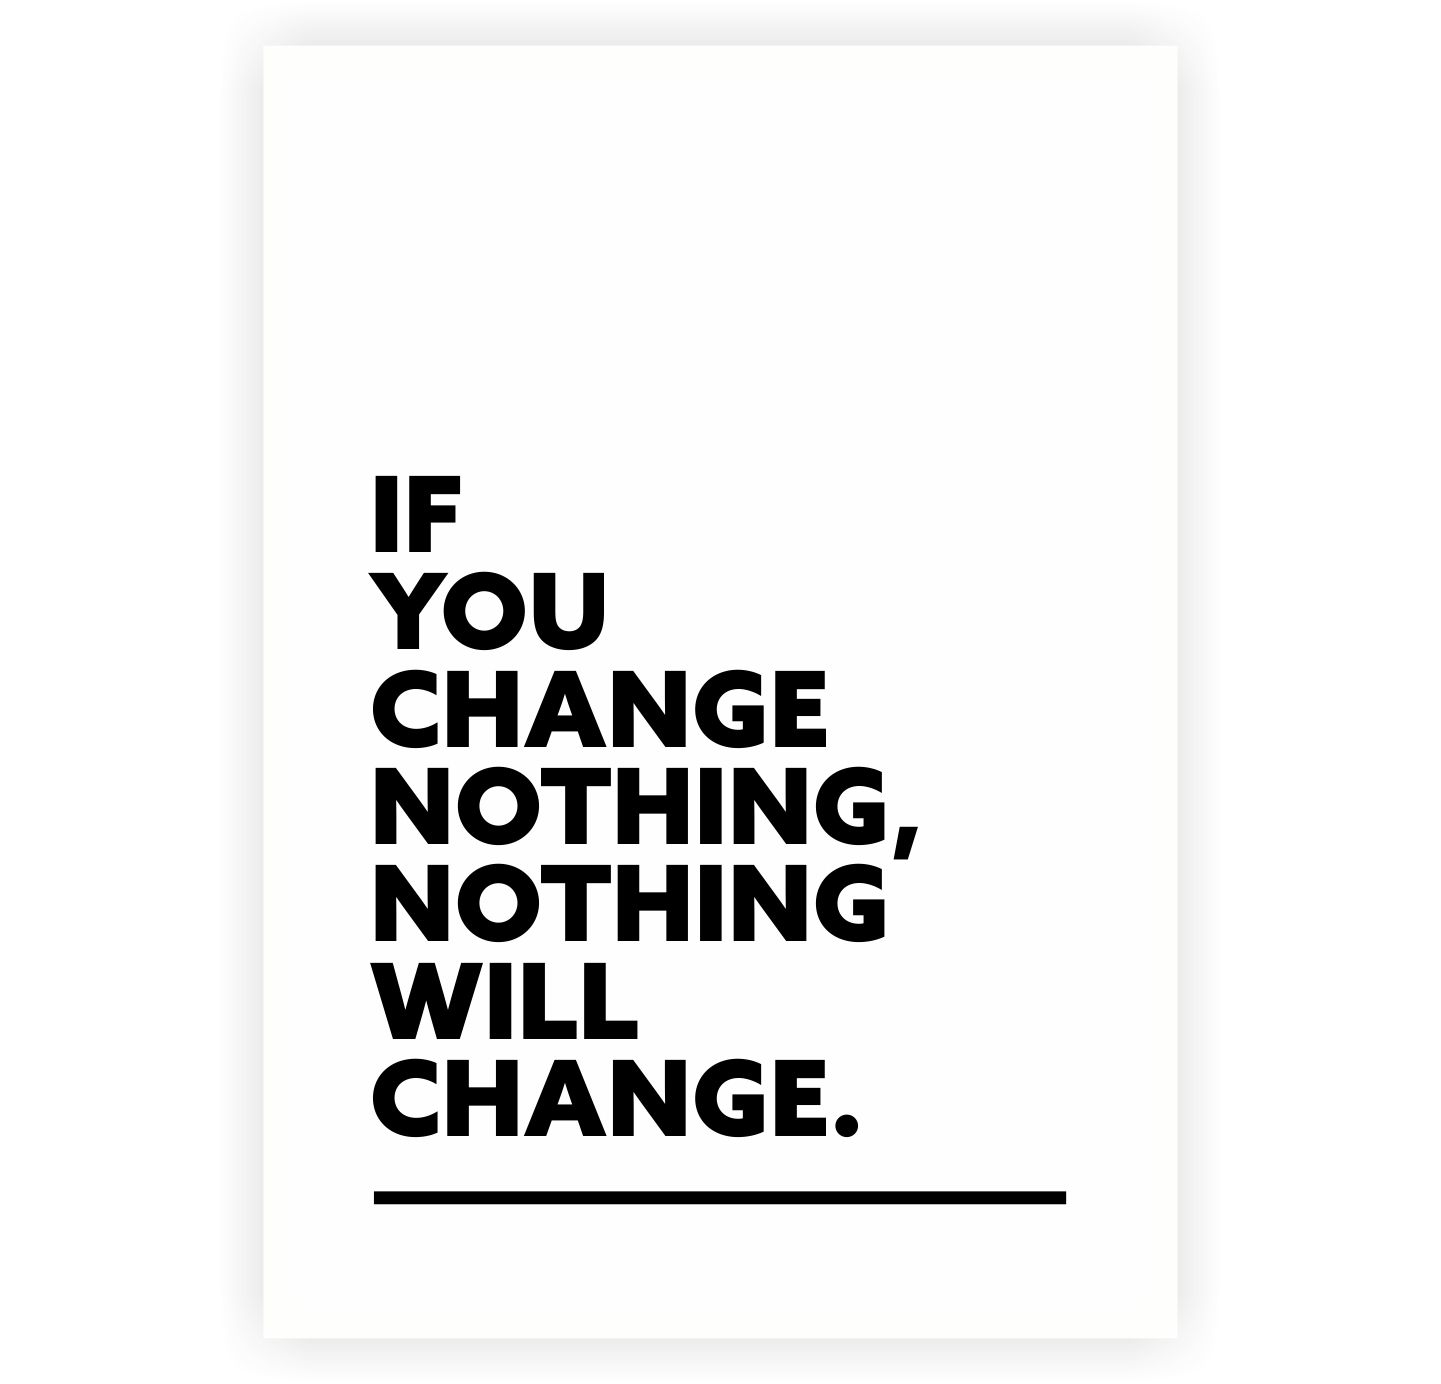 Change Quotes Business Image Quotes At Hippoquotes Com Encouragement Quotes Work Encouragement Quotes Change Quotes